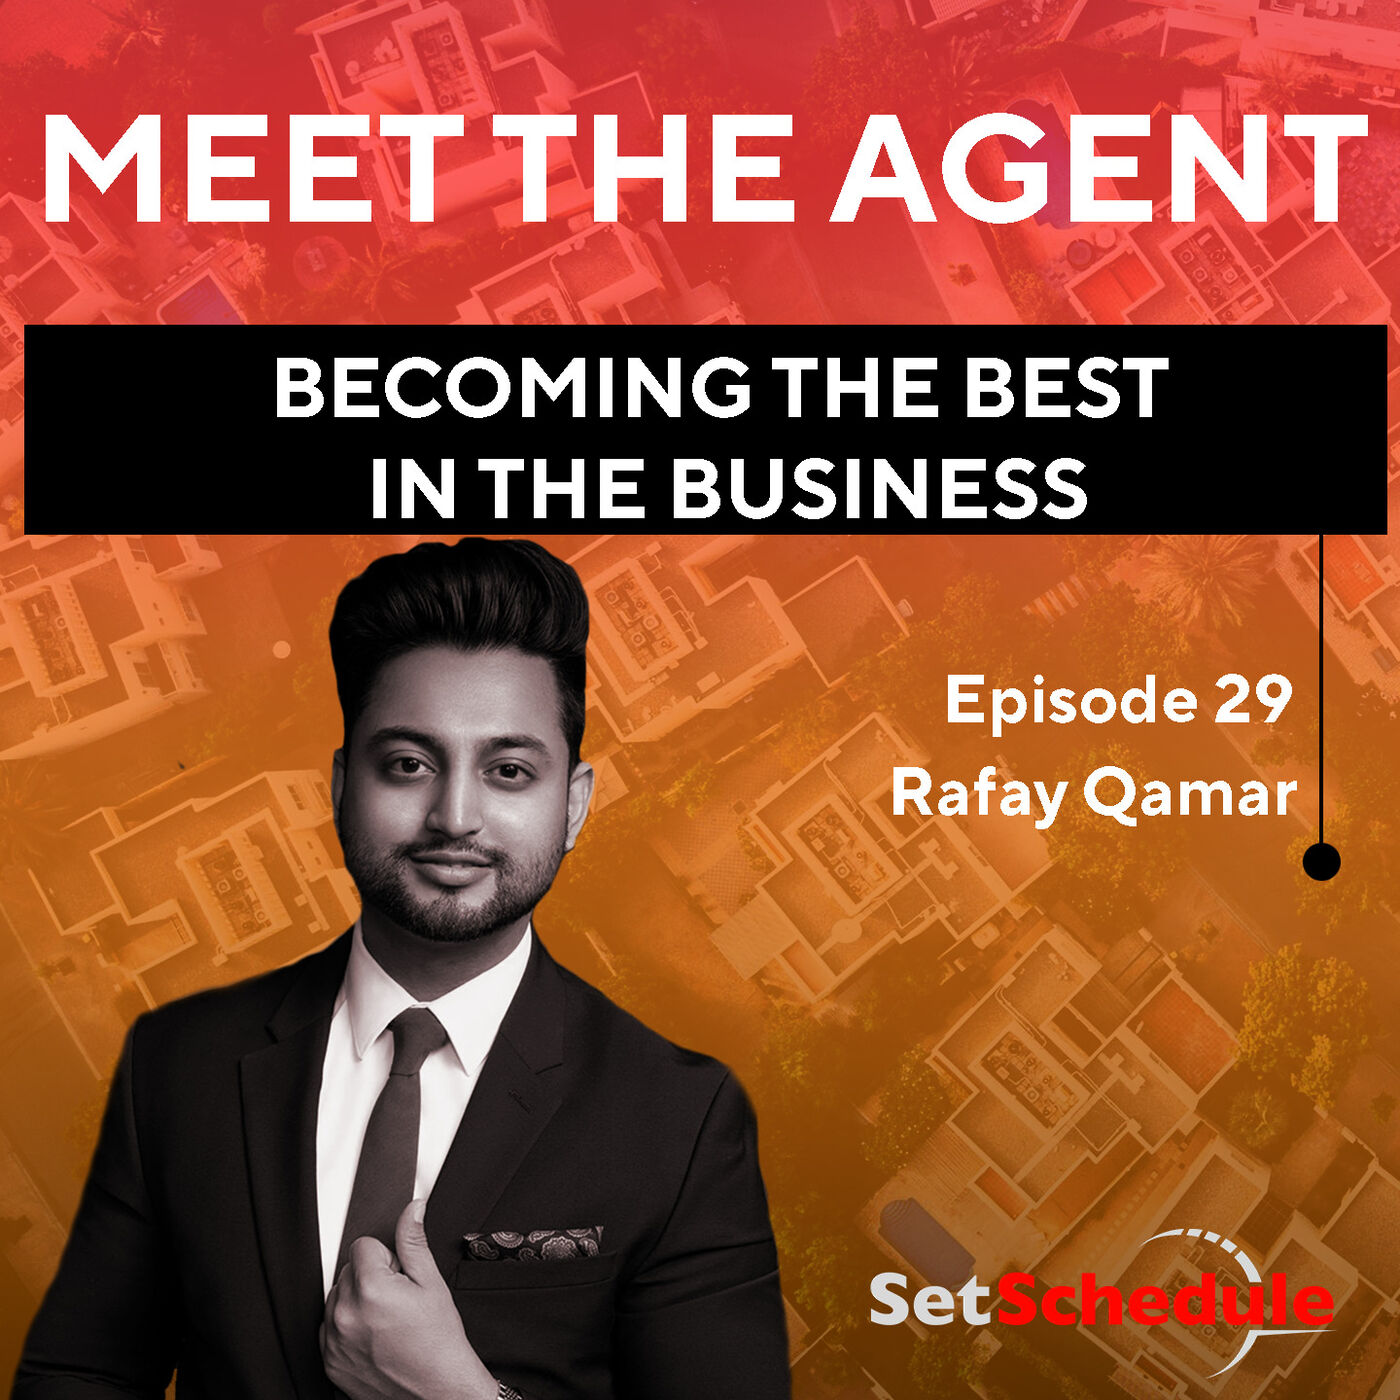 Becoming the Best in the Business - Rafay Qamar